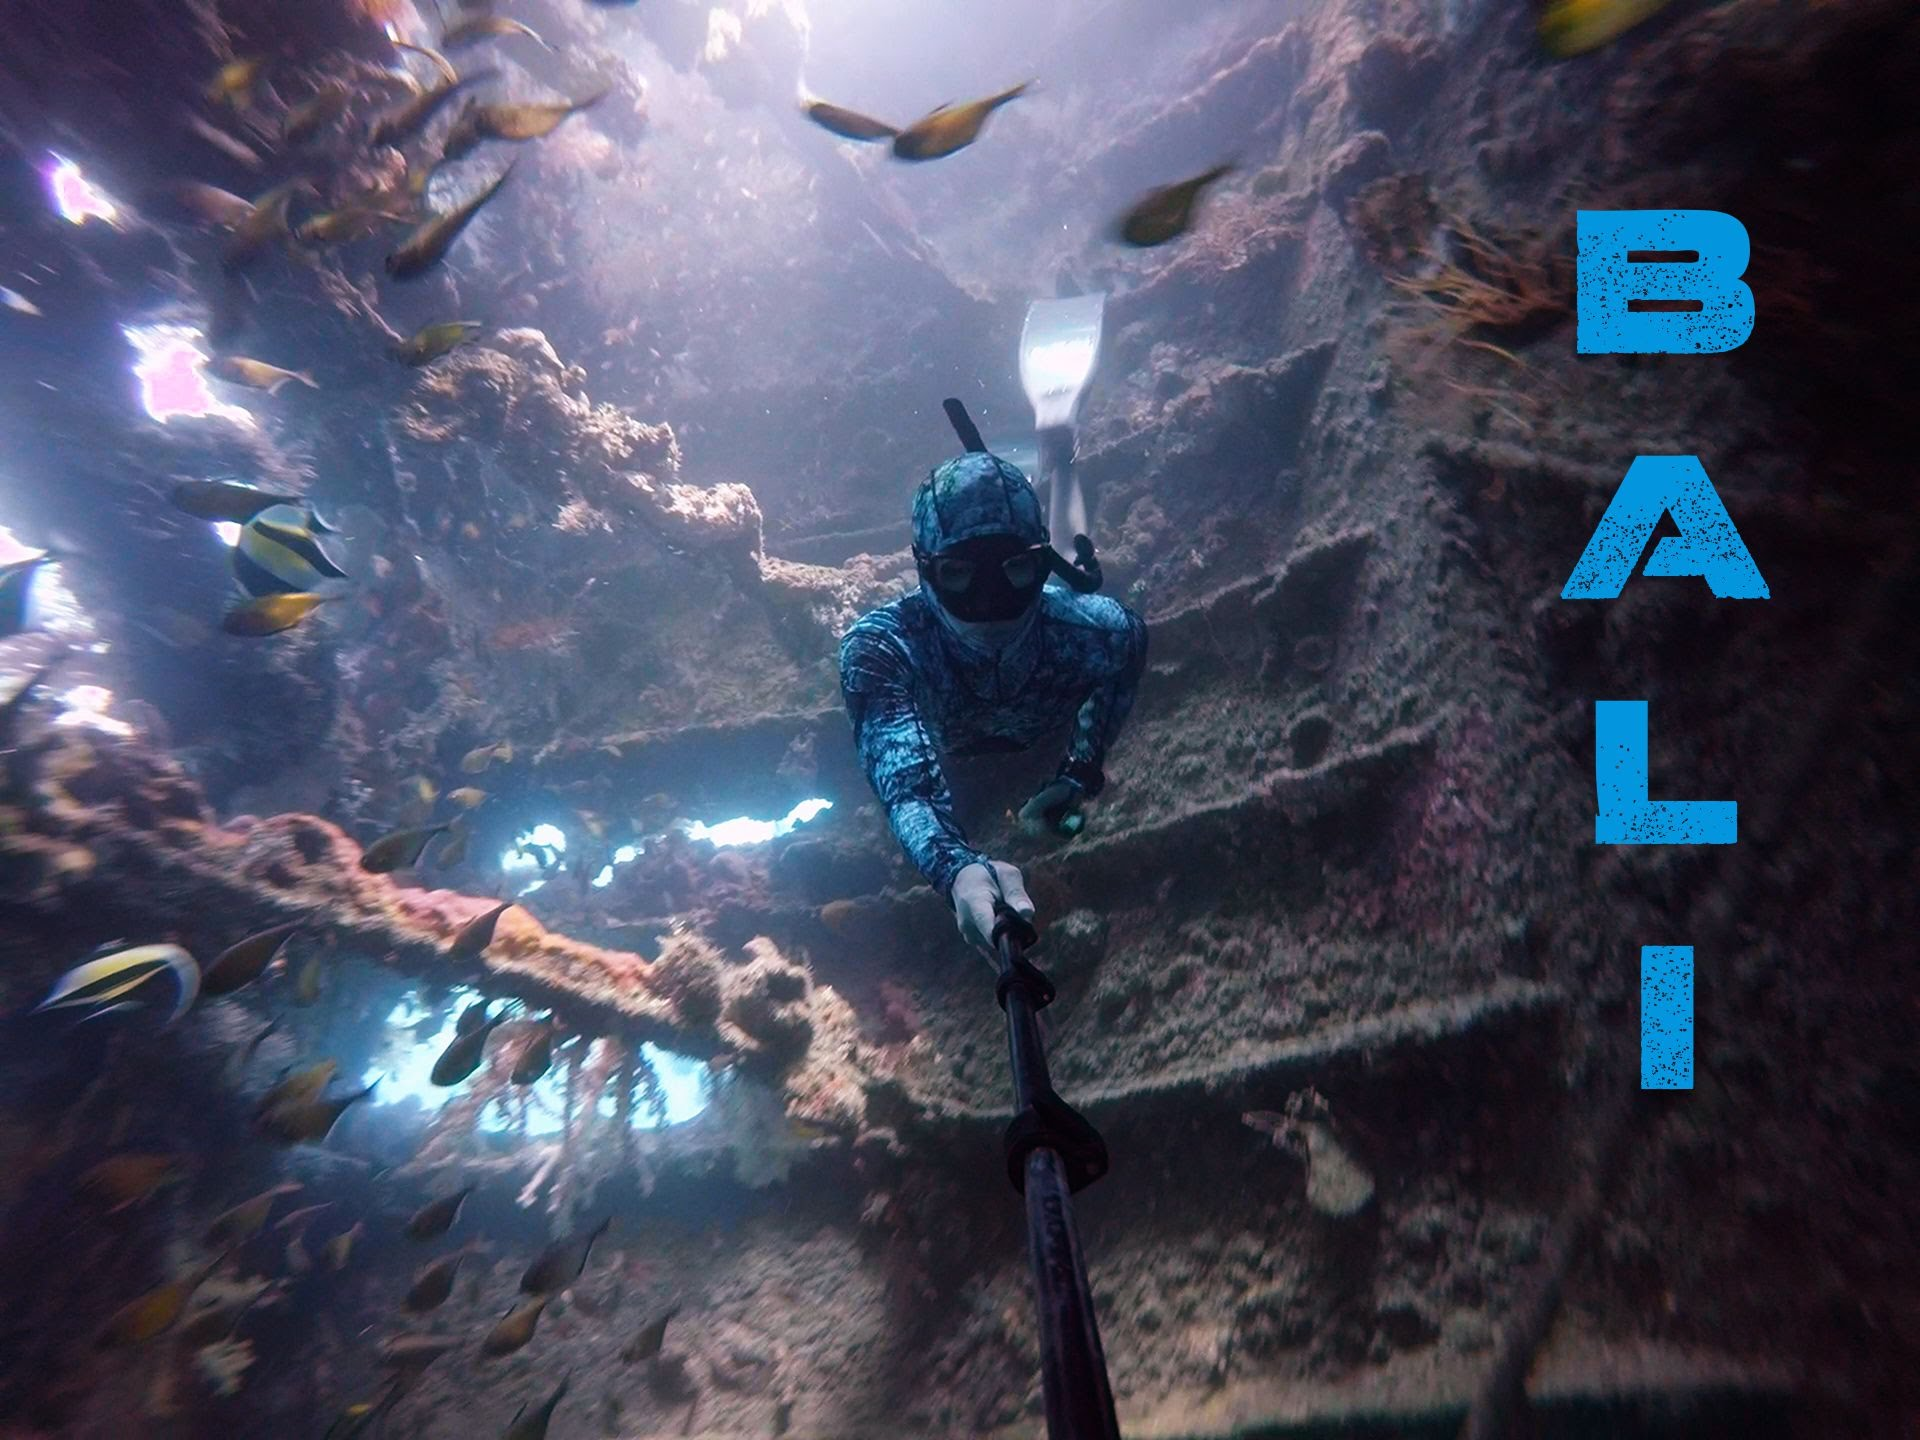 Scuba diving experience essay